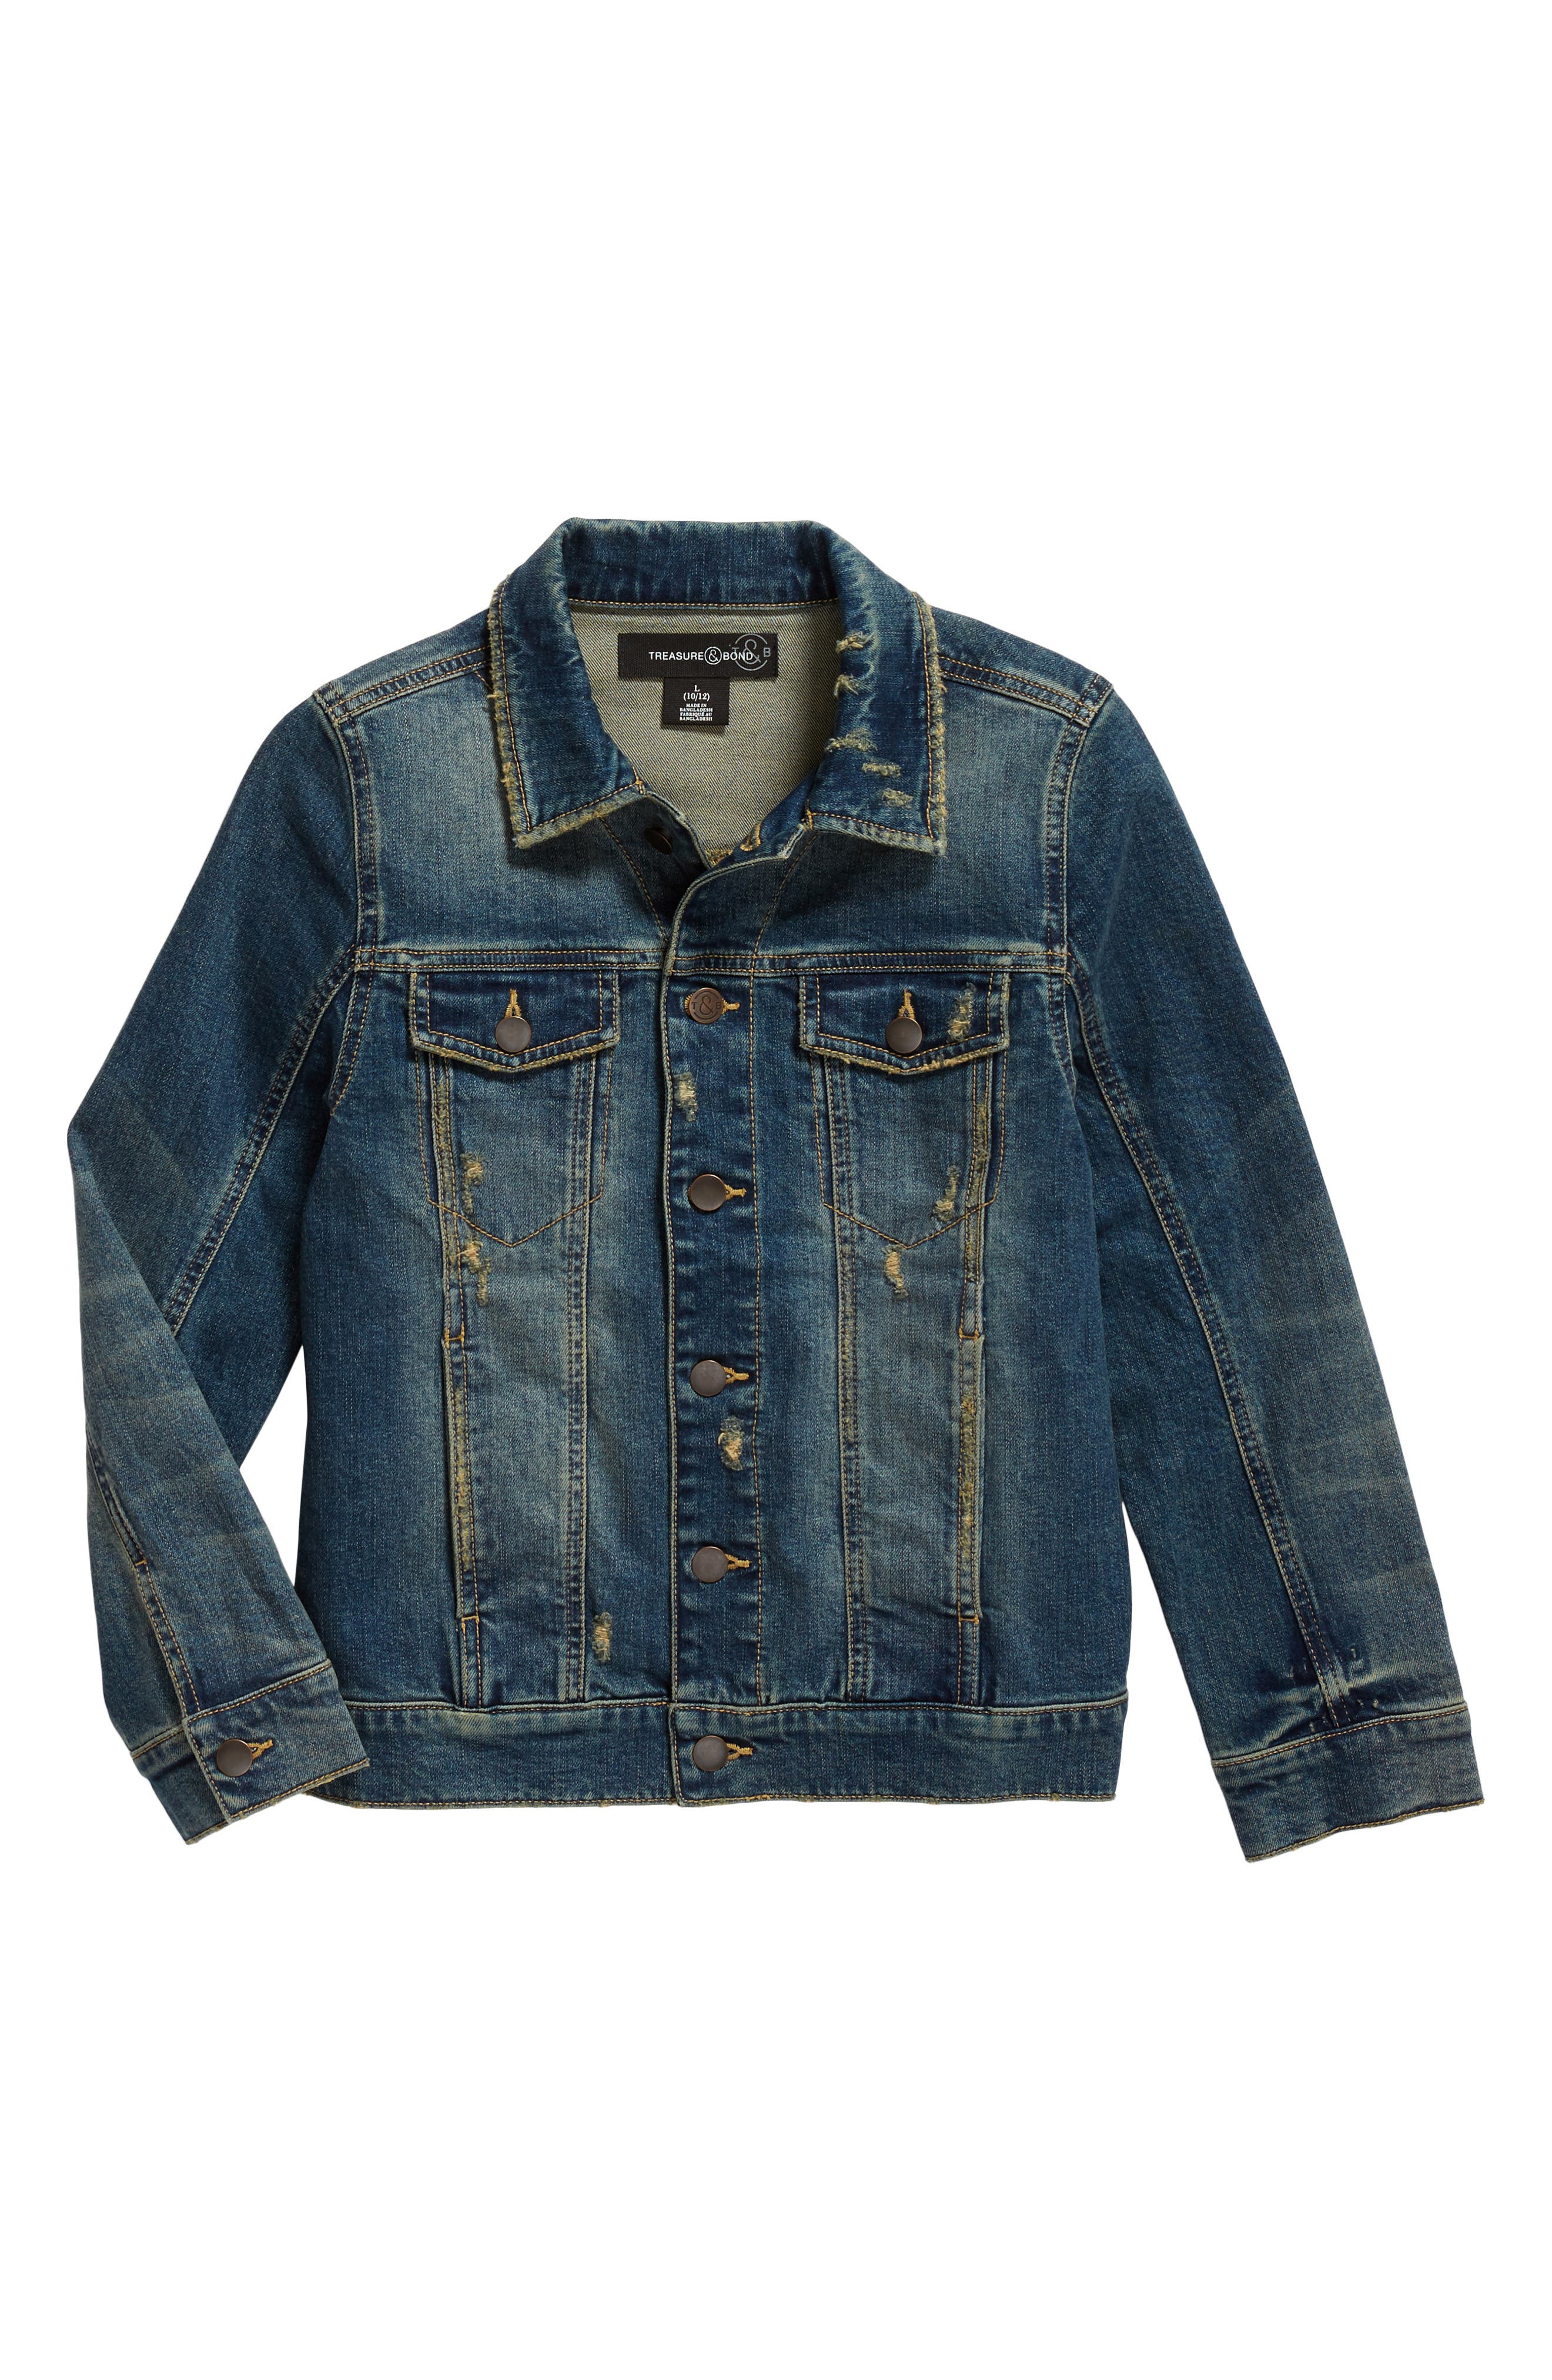 Distressed Denim Jacket,                             Main thumbnail 1, color,                             Lott Wash